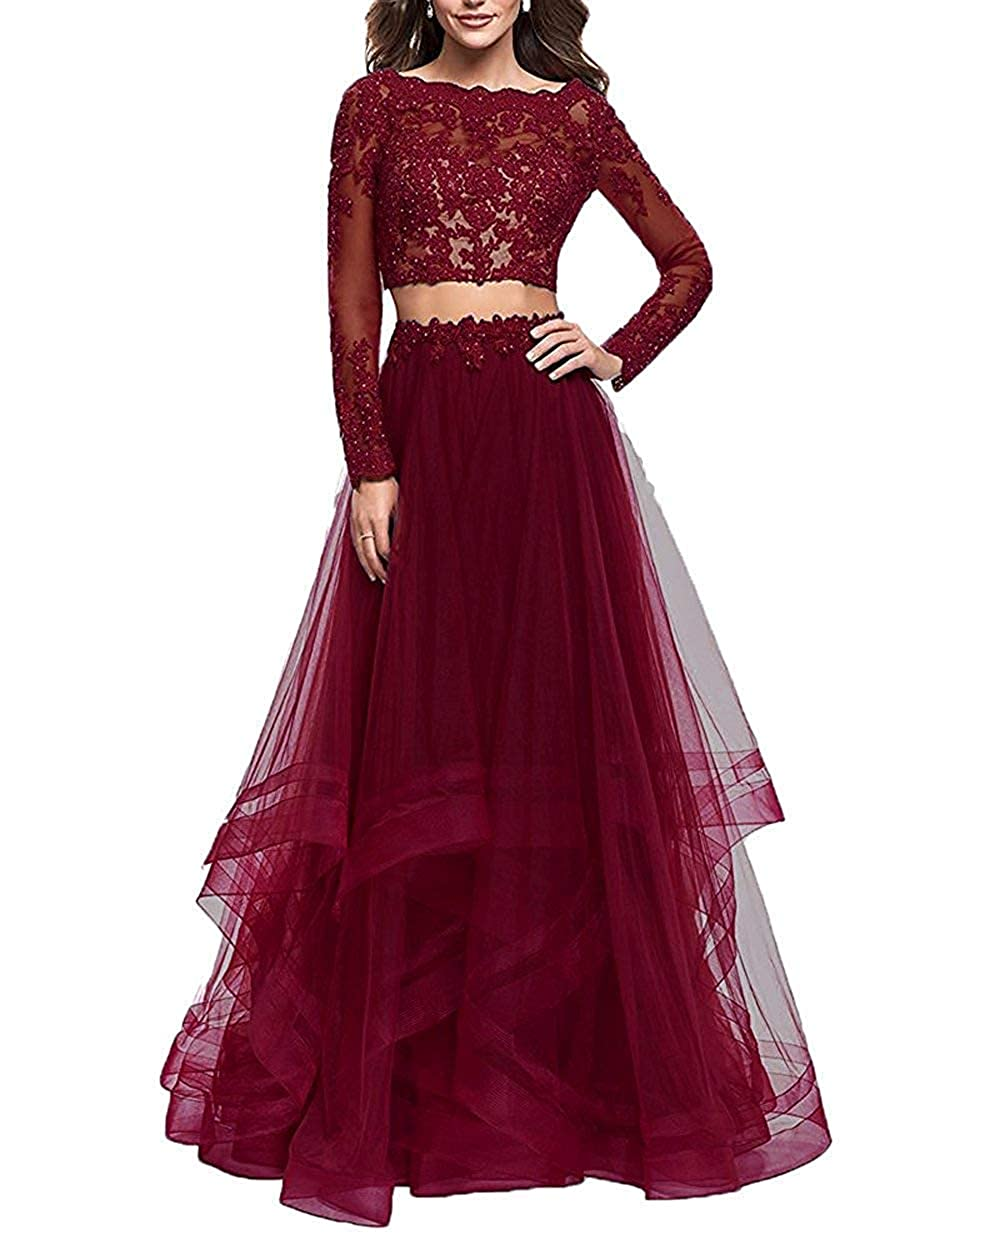 Burgundy Sulidi Womens Lace Long Sleeves 2 Piece Tulle Prom Dresses 2019 Long Backless Formal Evening Gowns C238